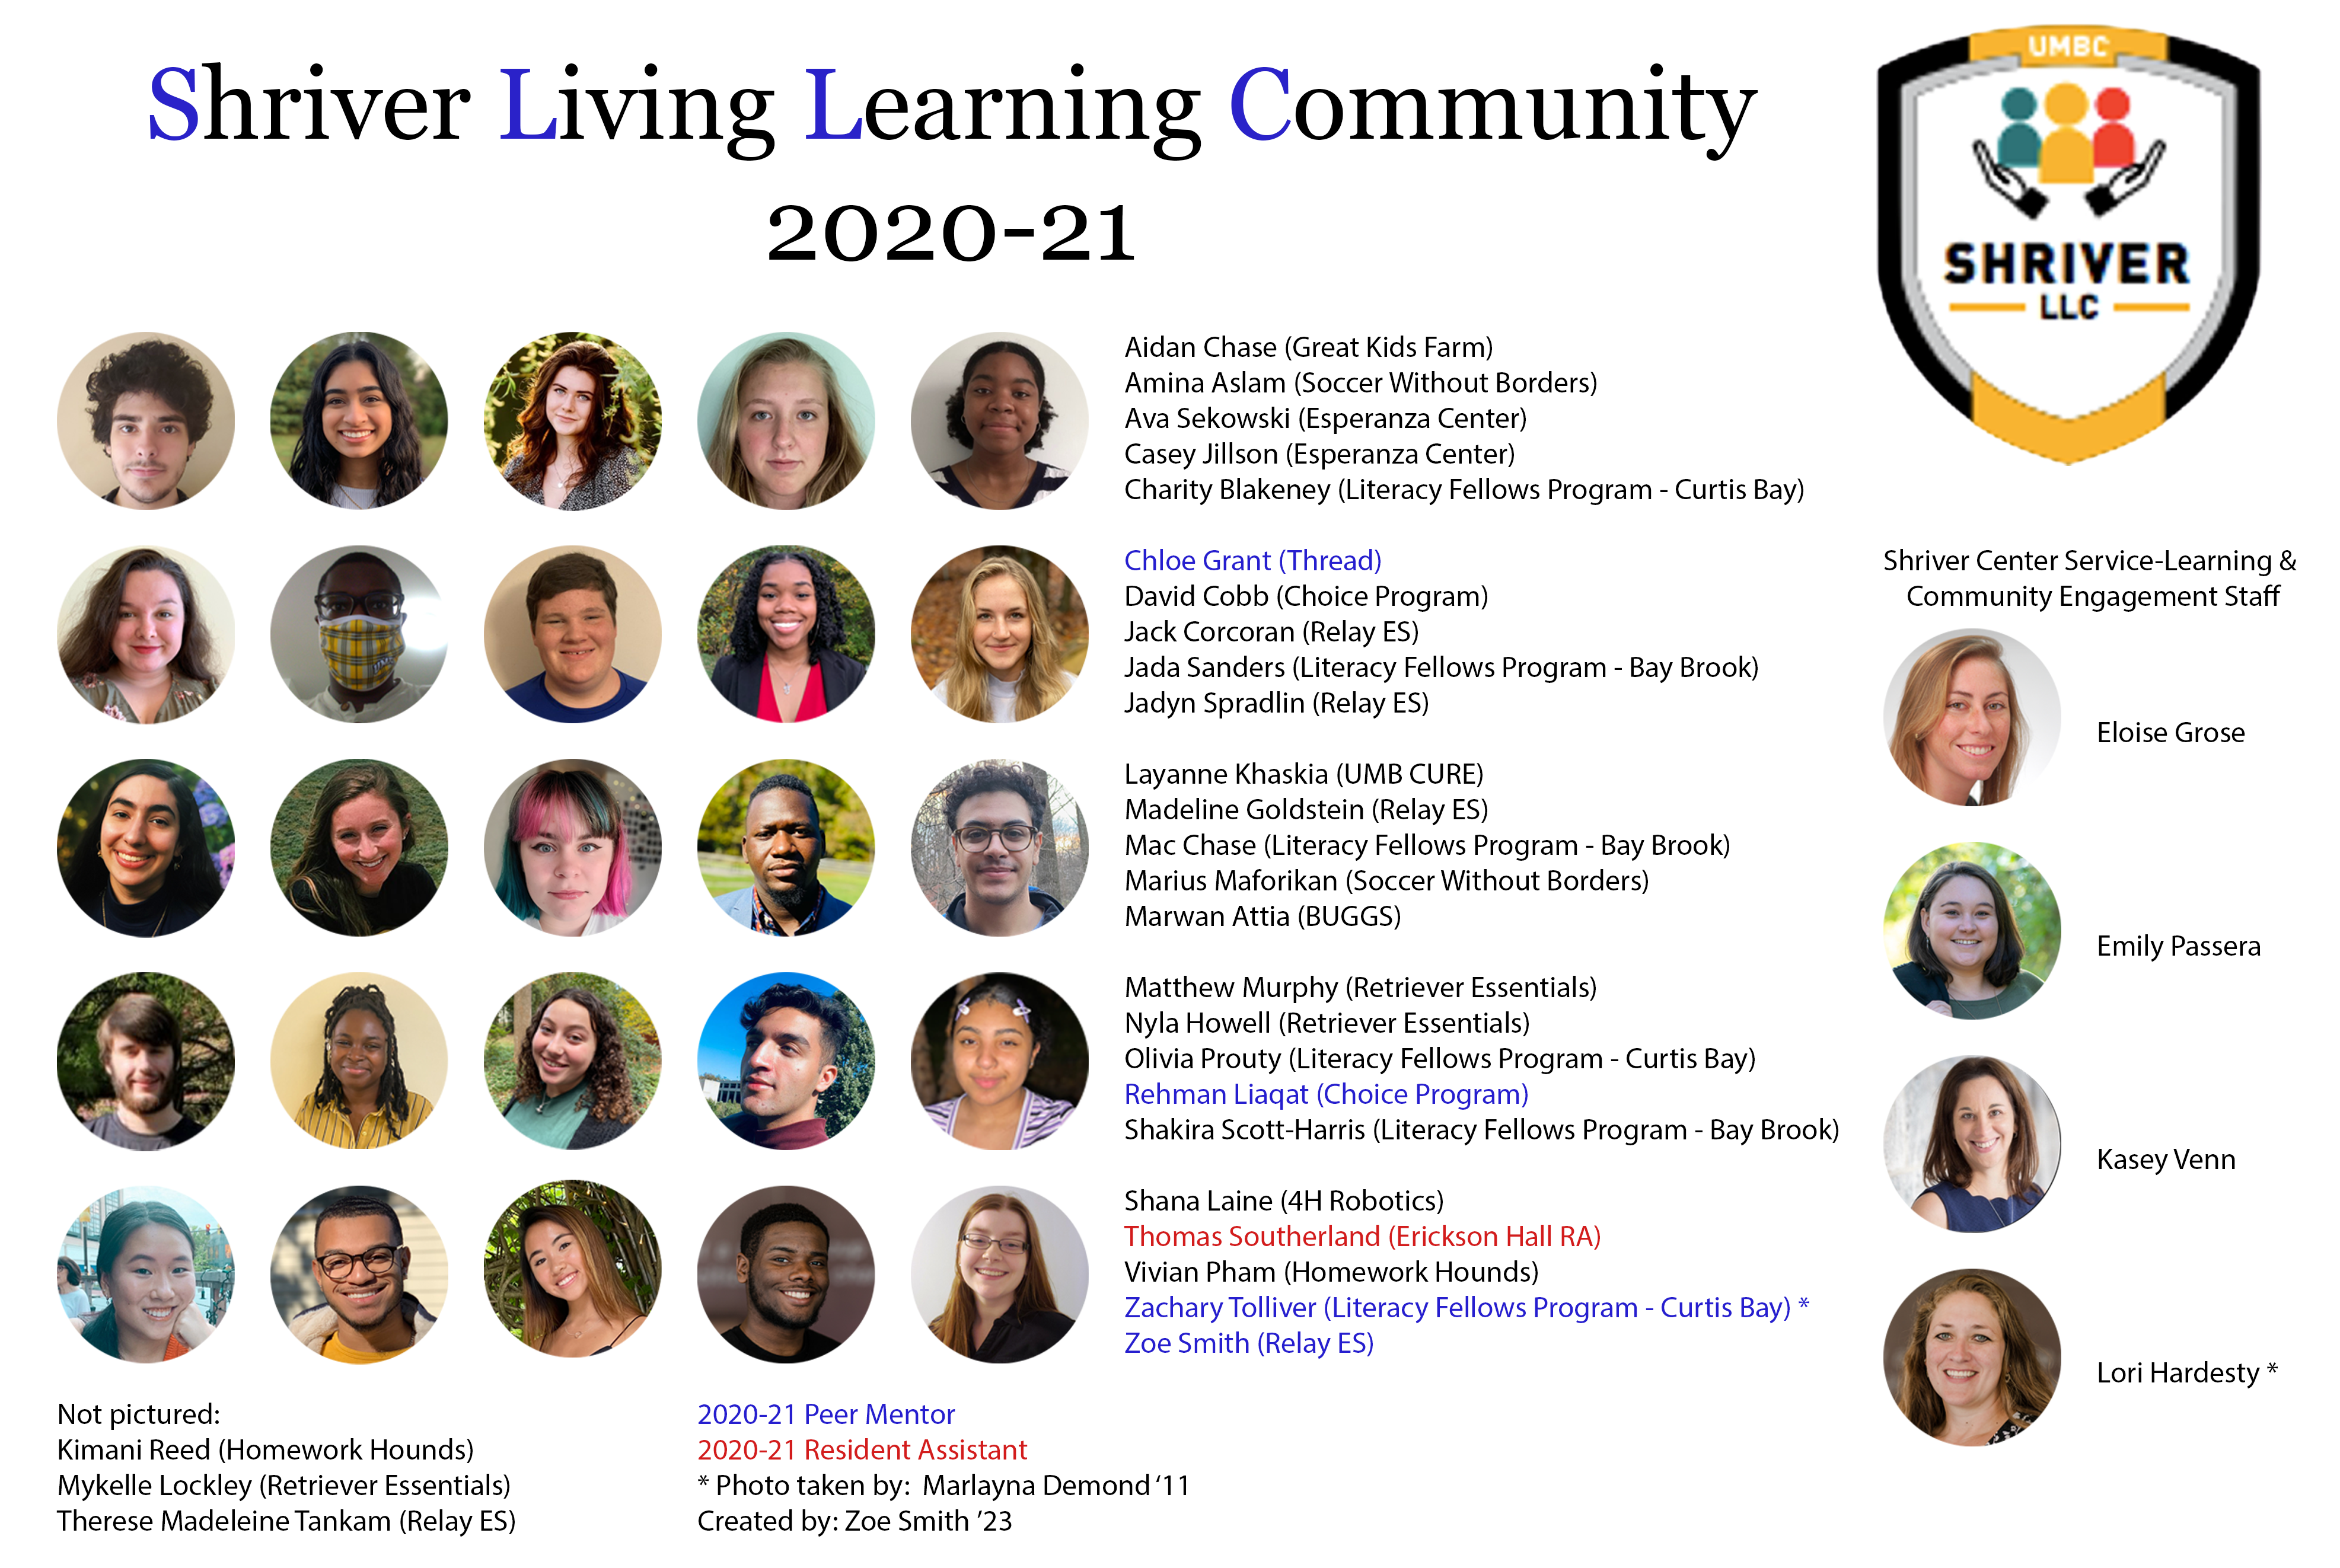 Meet the 21st cohort of the Shriver Living Learning Community!